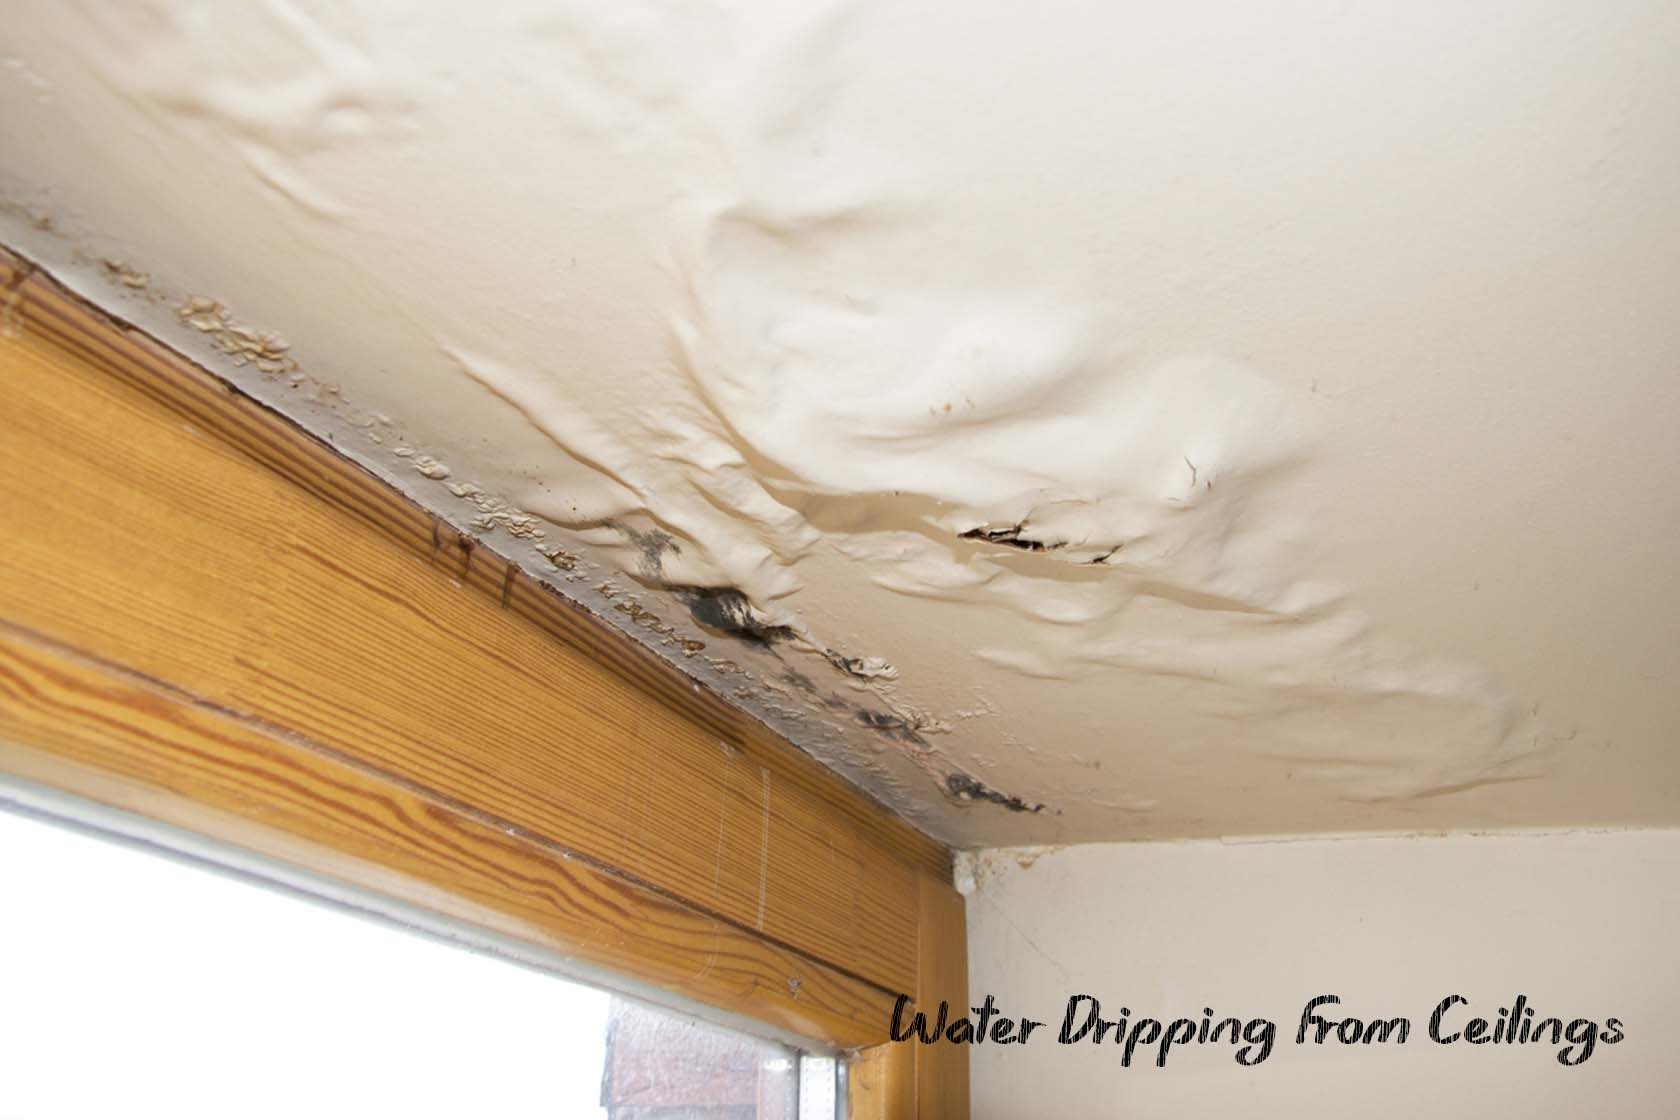 Water Dripping From Your Ceilings